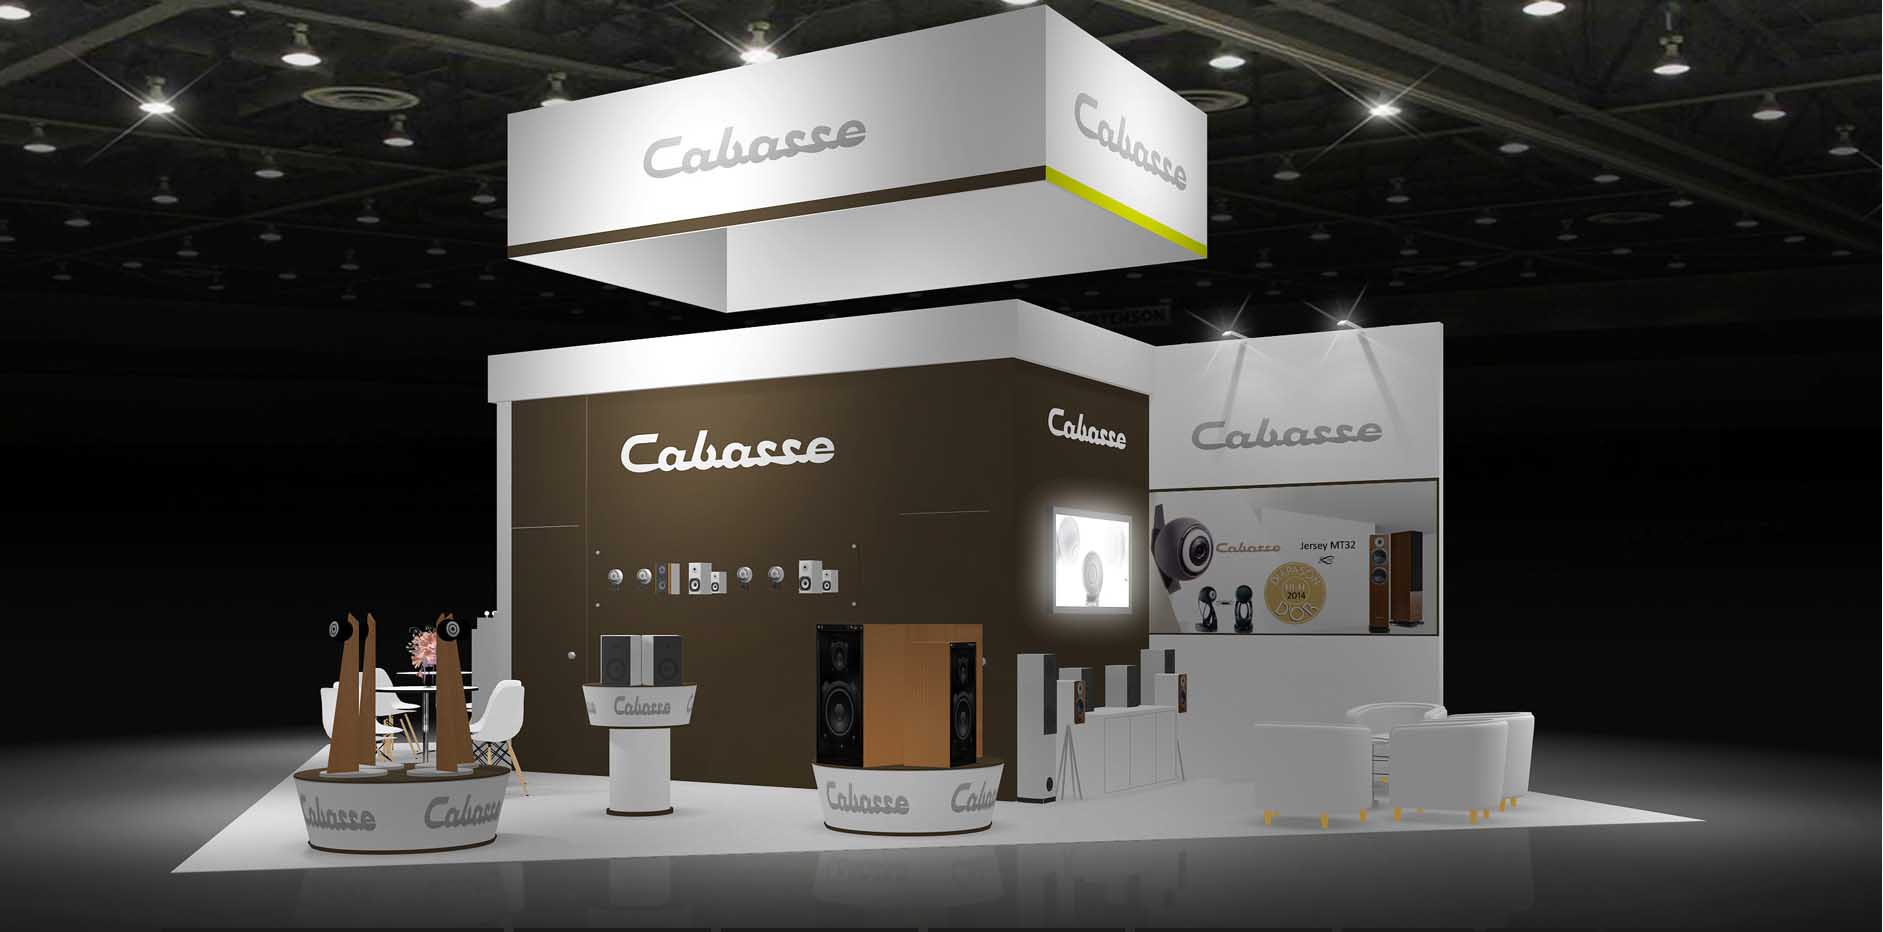 Stand Hire For Exhibition : Exhibition stand hire quotes